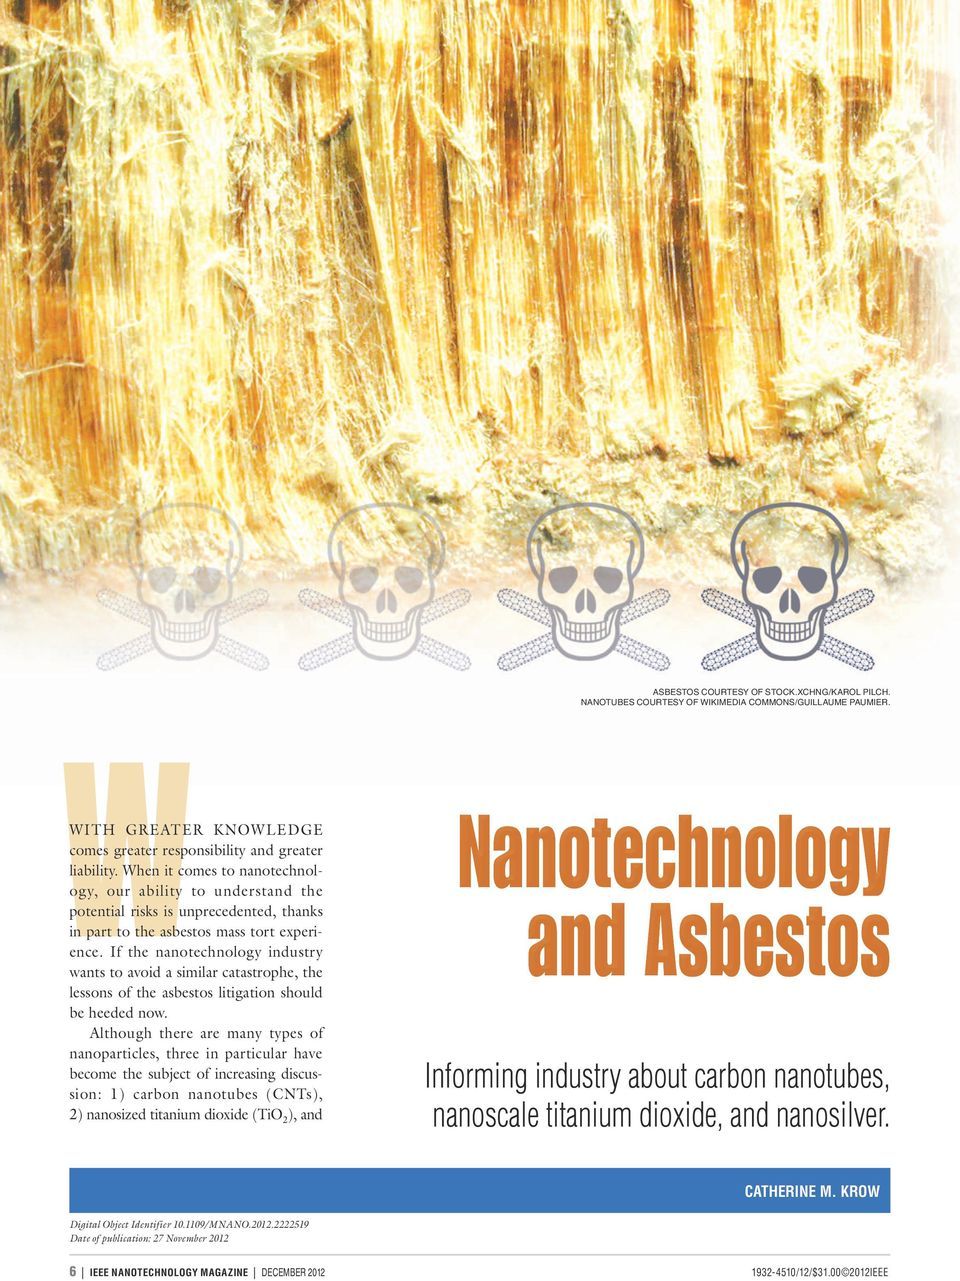 If the nanotechnology industry wants to avoid a similar catastrophe, the lessons of the asbestos litigation should be heeded now.